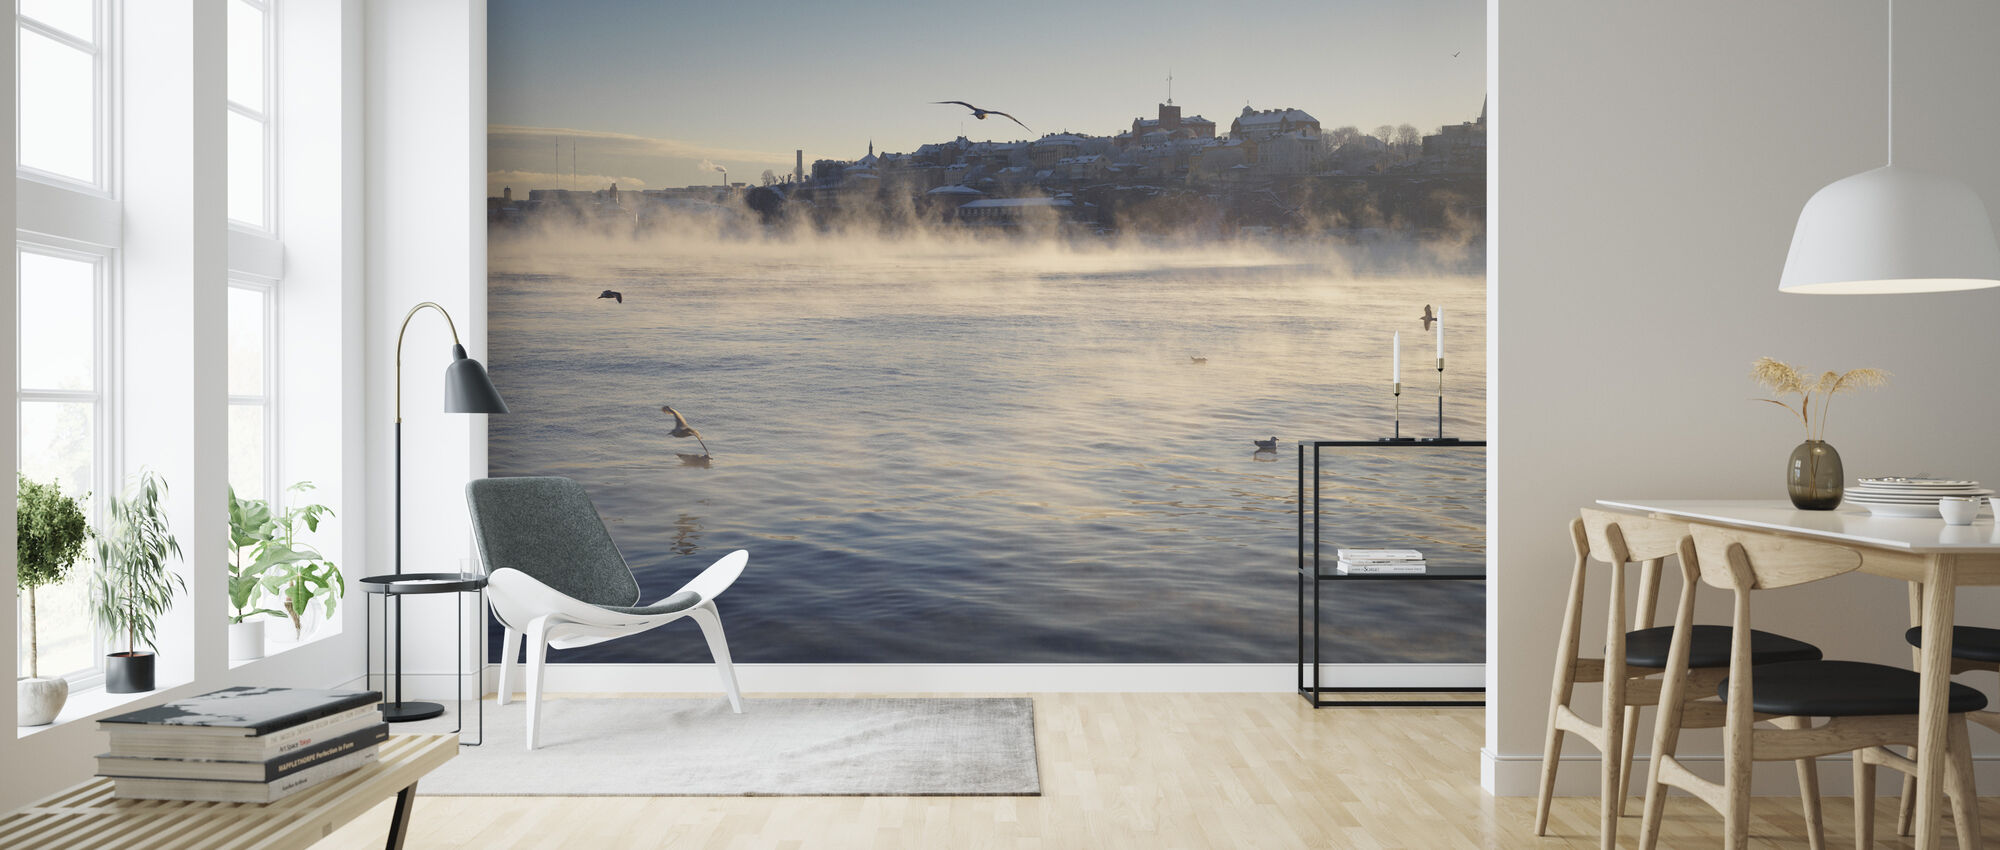 Fog over Stadsgårdskajen in Stockholm - Wallpaper - Living Room